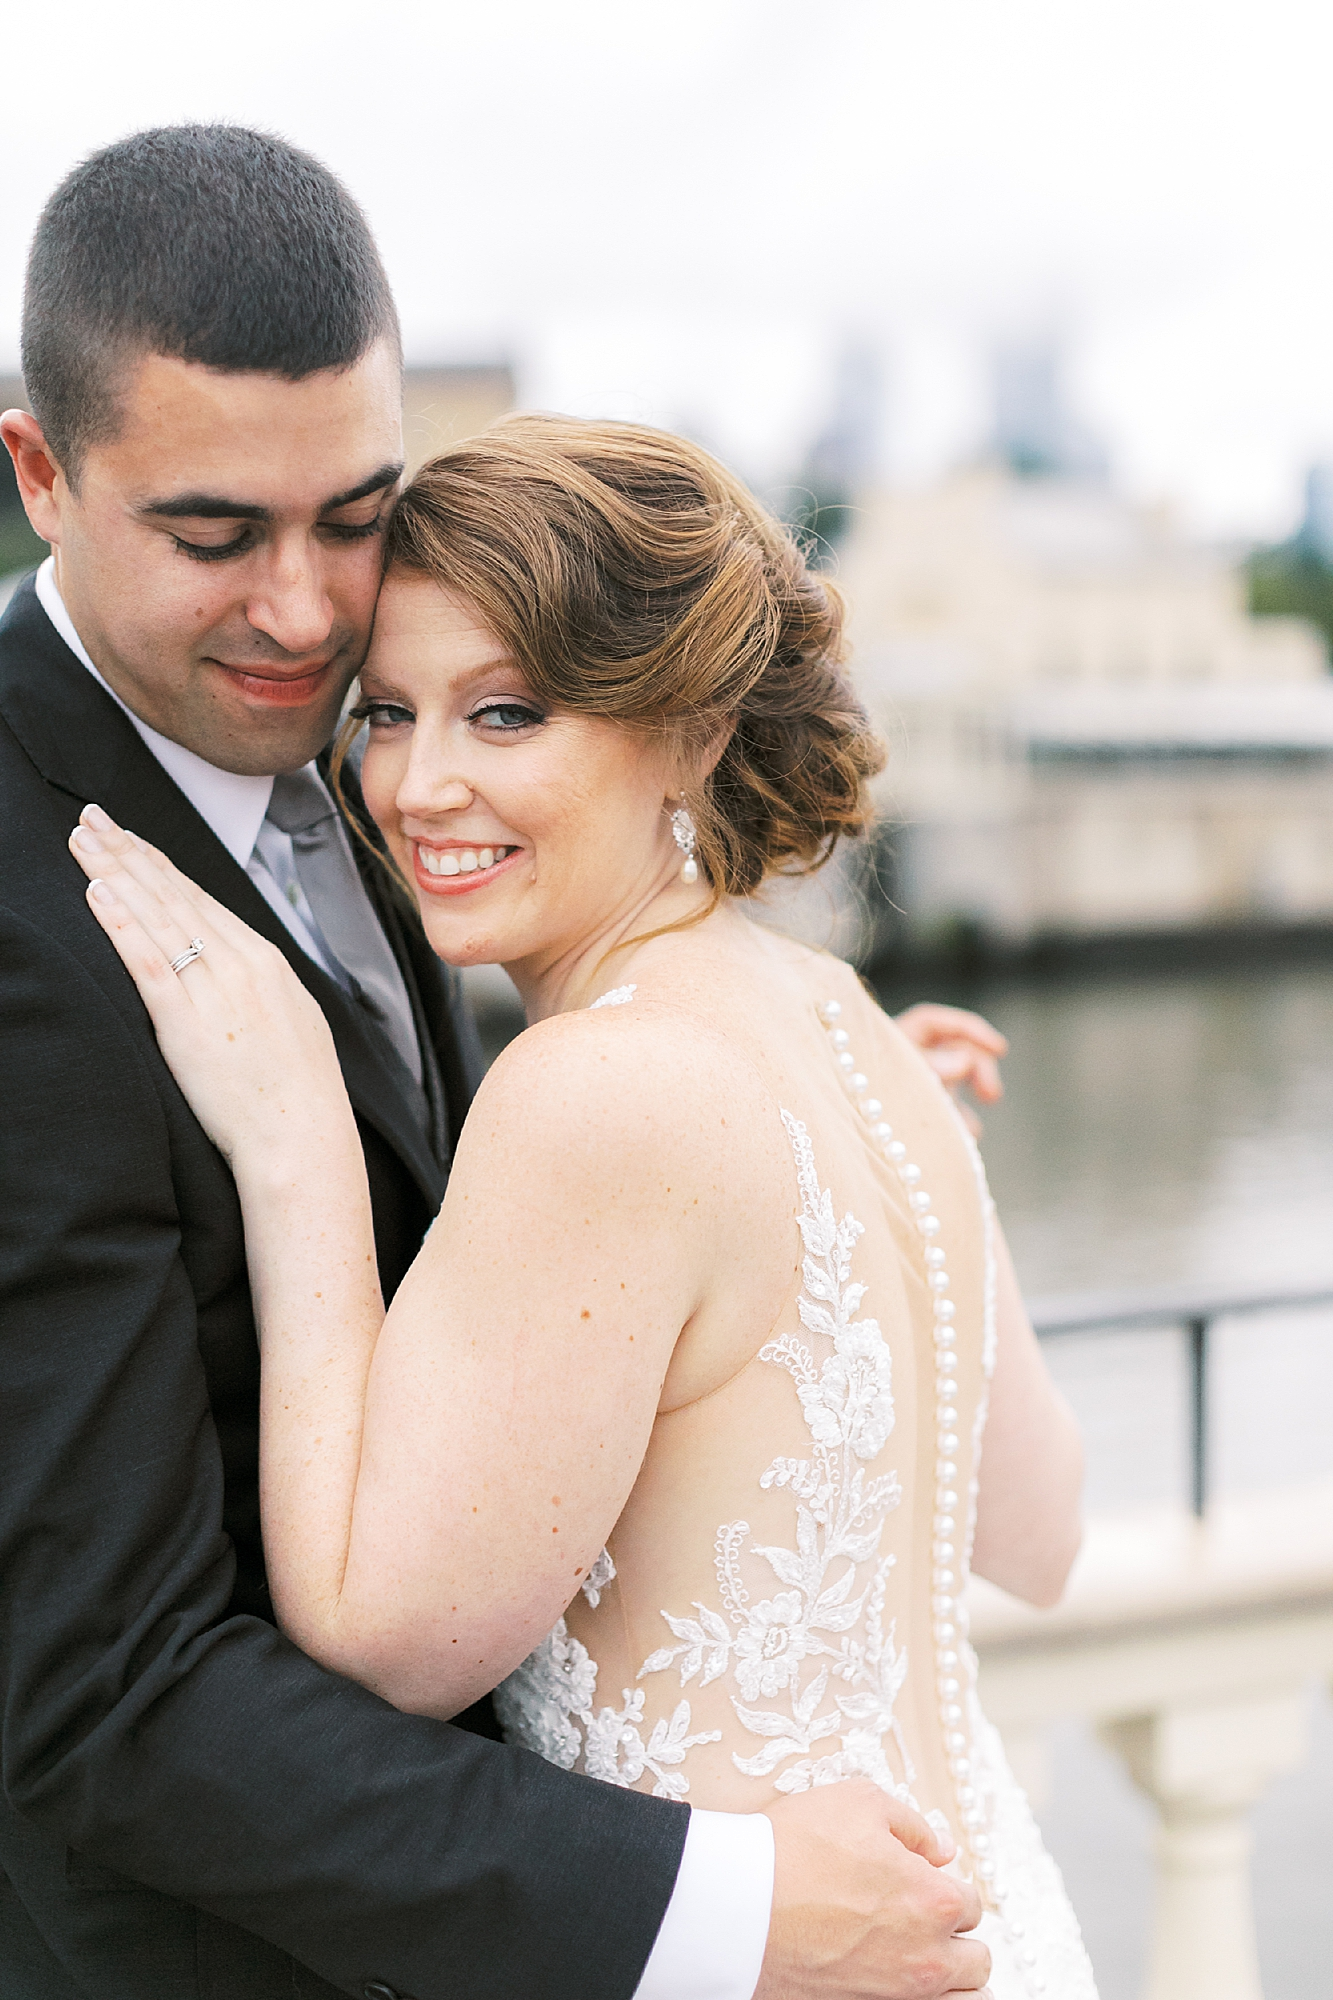 Genuine and Natural Philadelphia Wedding Photography by Magdalena Studios 0041